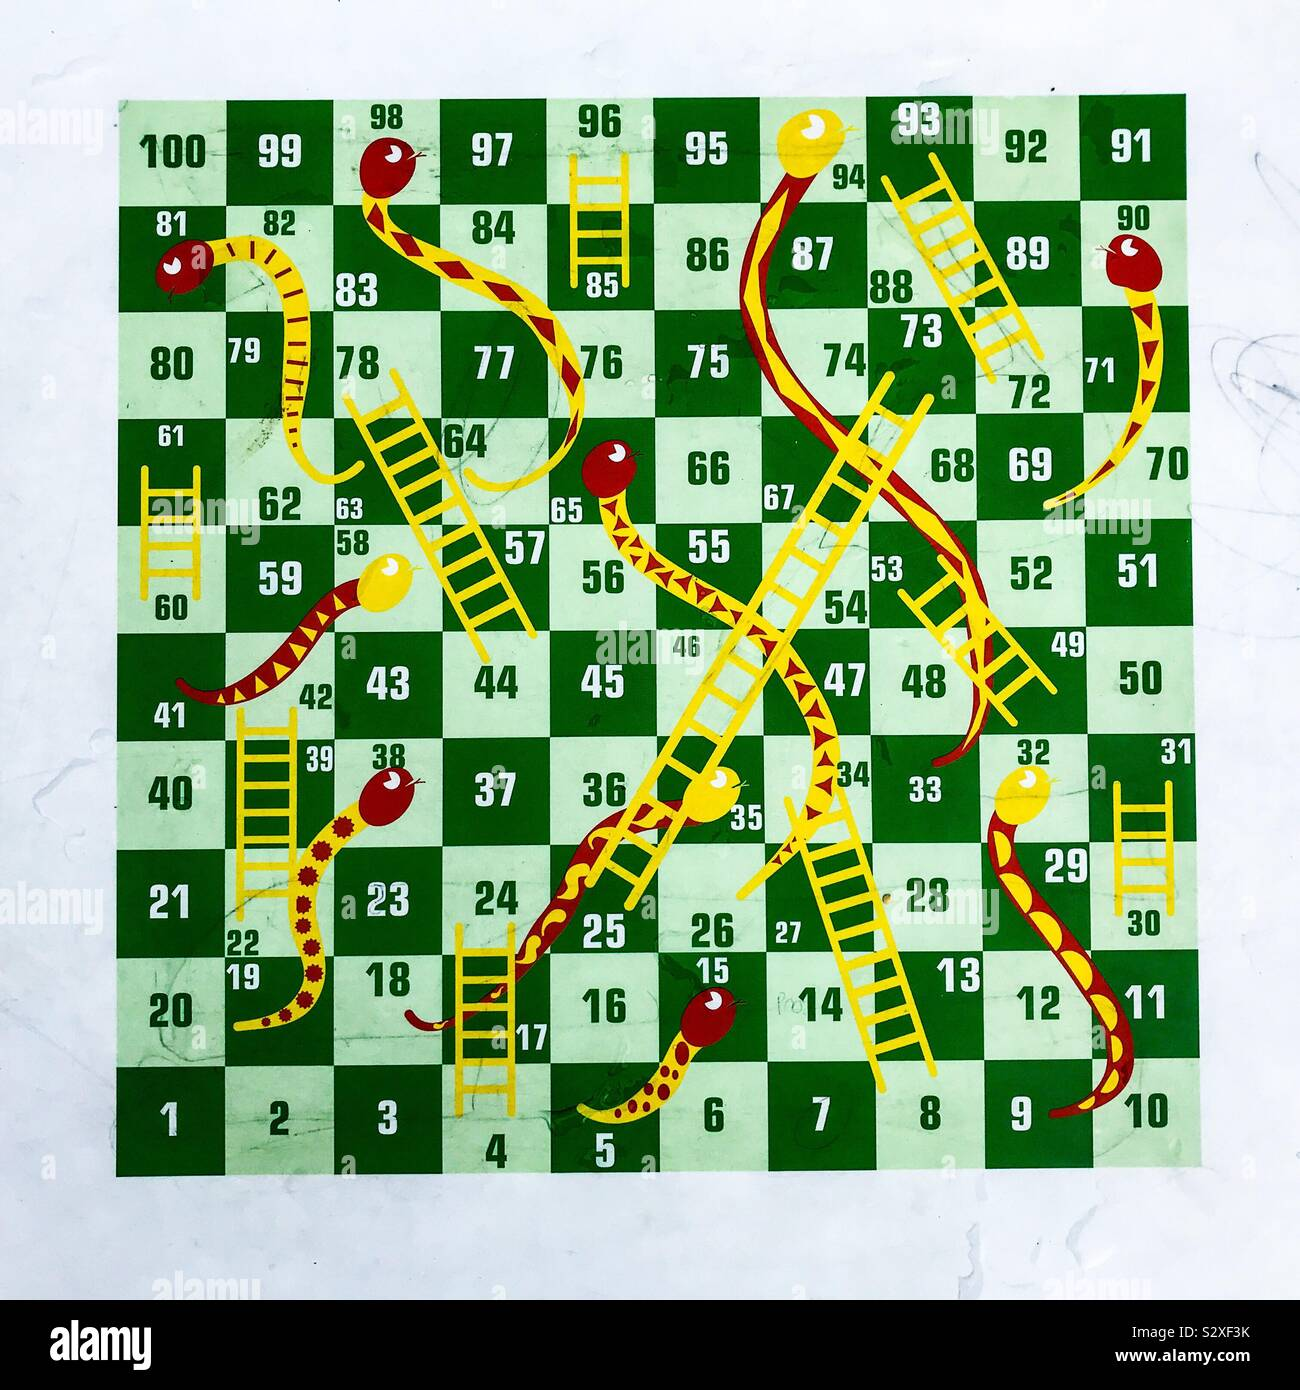 Snakes And Ladders High Resolution Stock Photography And Images Alamy